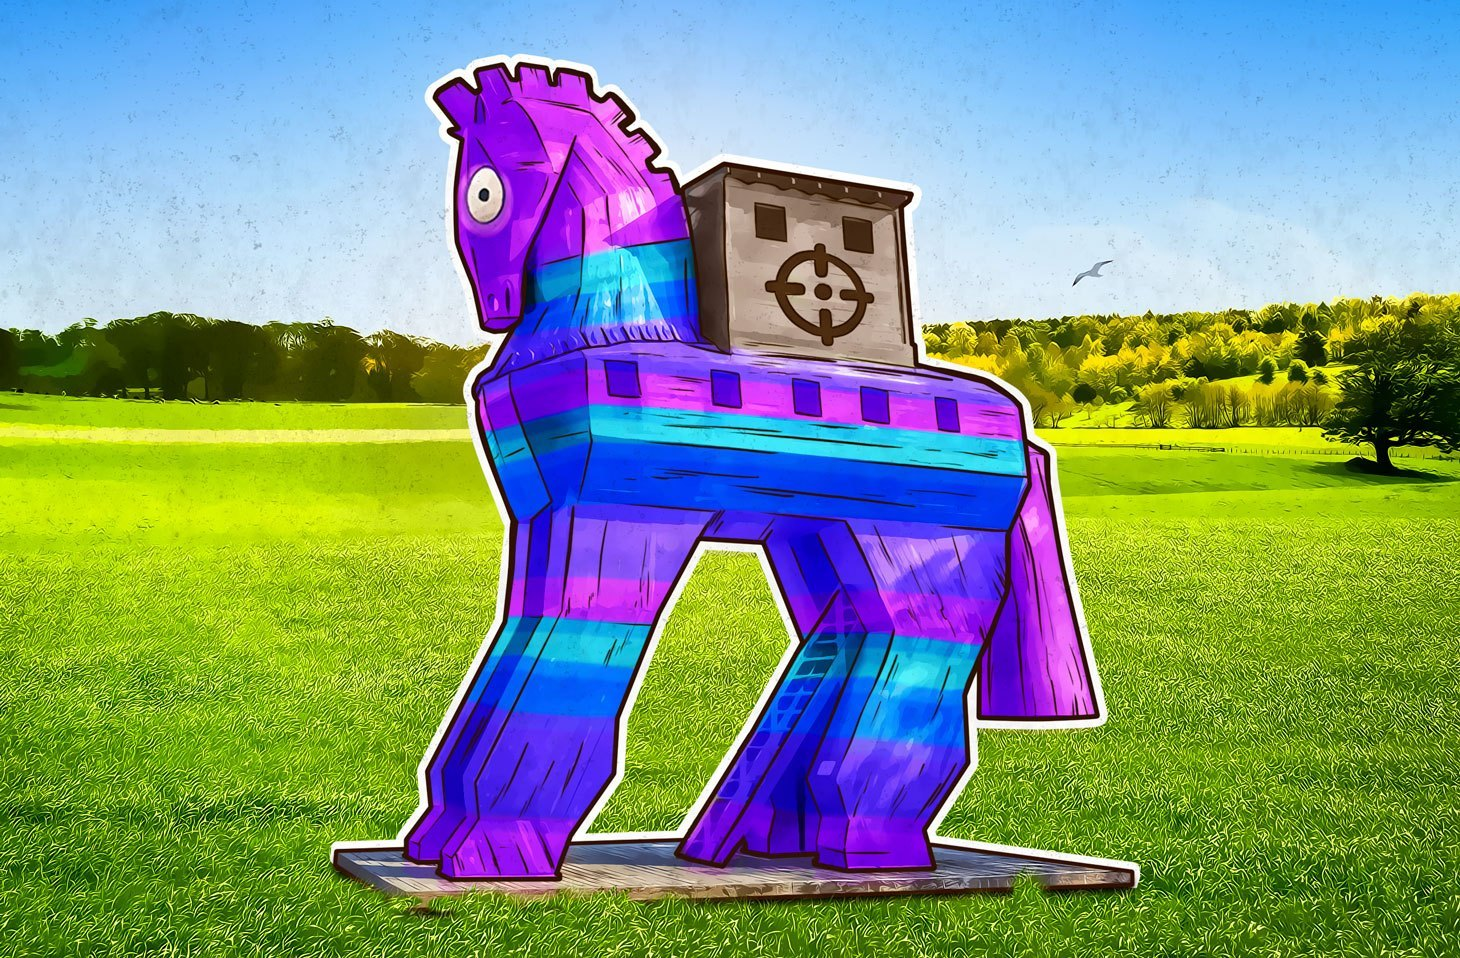 Ransomware posing as a Fortnite aim and WH cheat pack